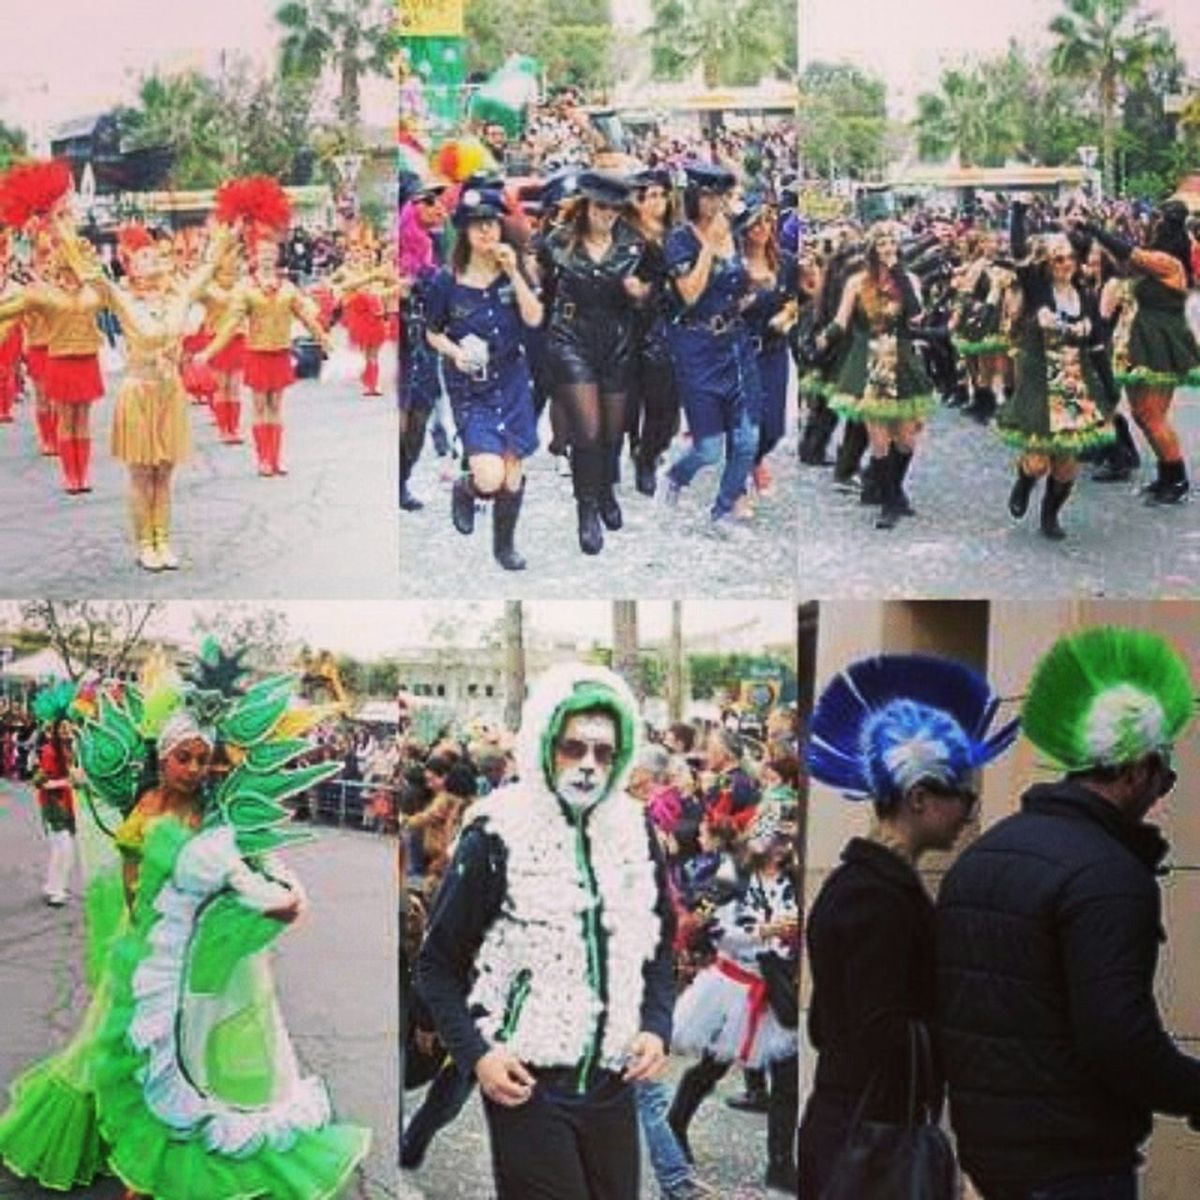 Carnaval2015 Limassol Costume Costume Party